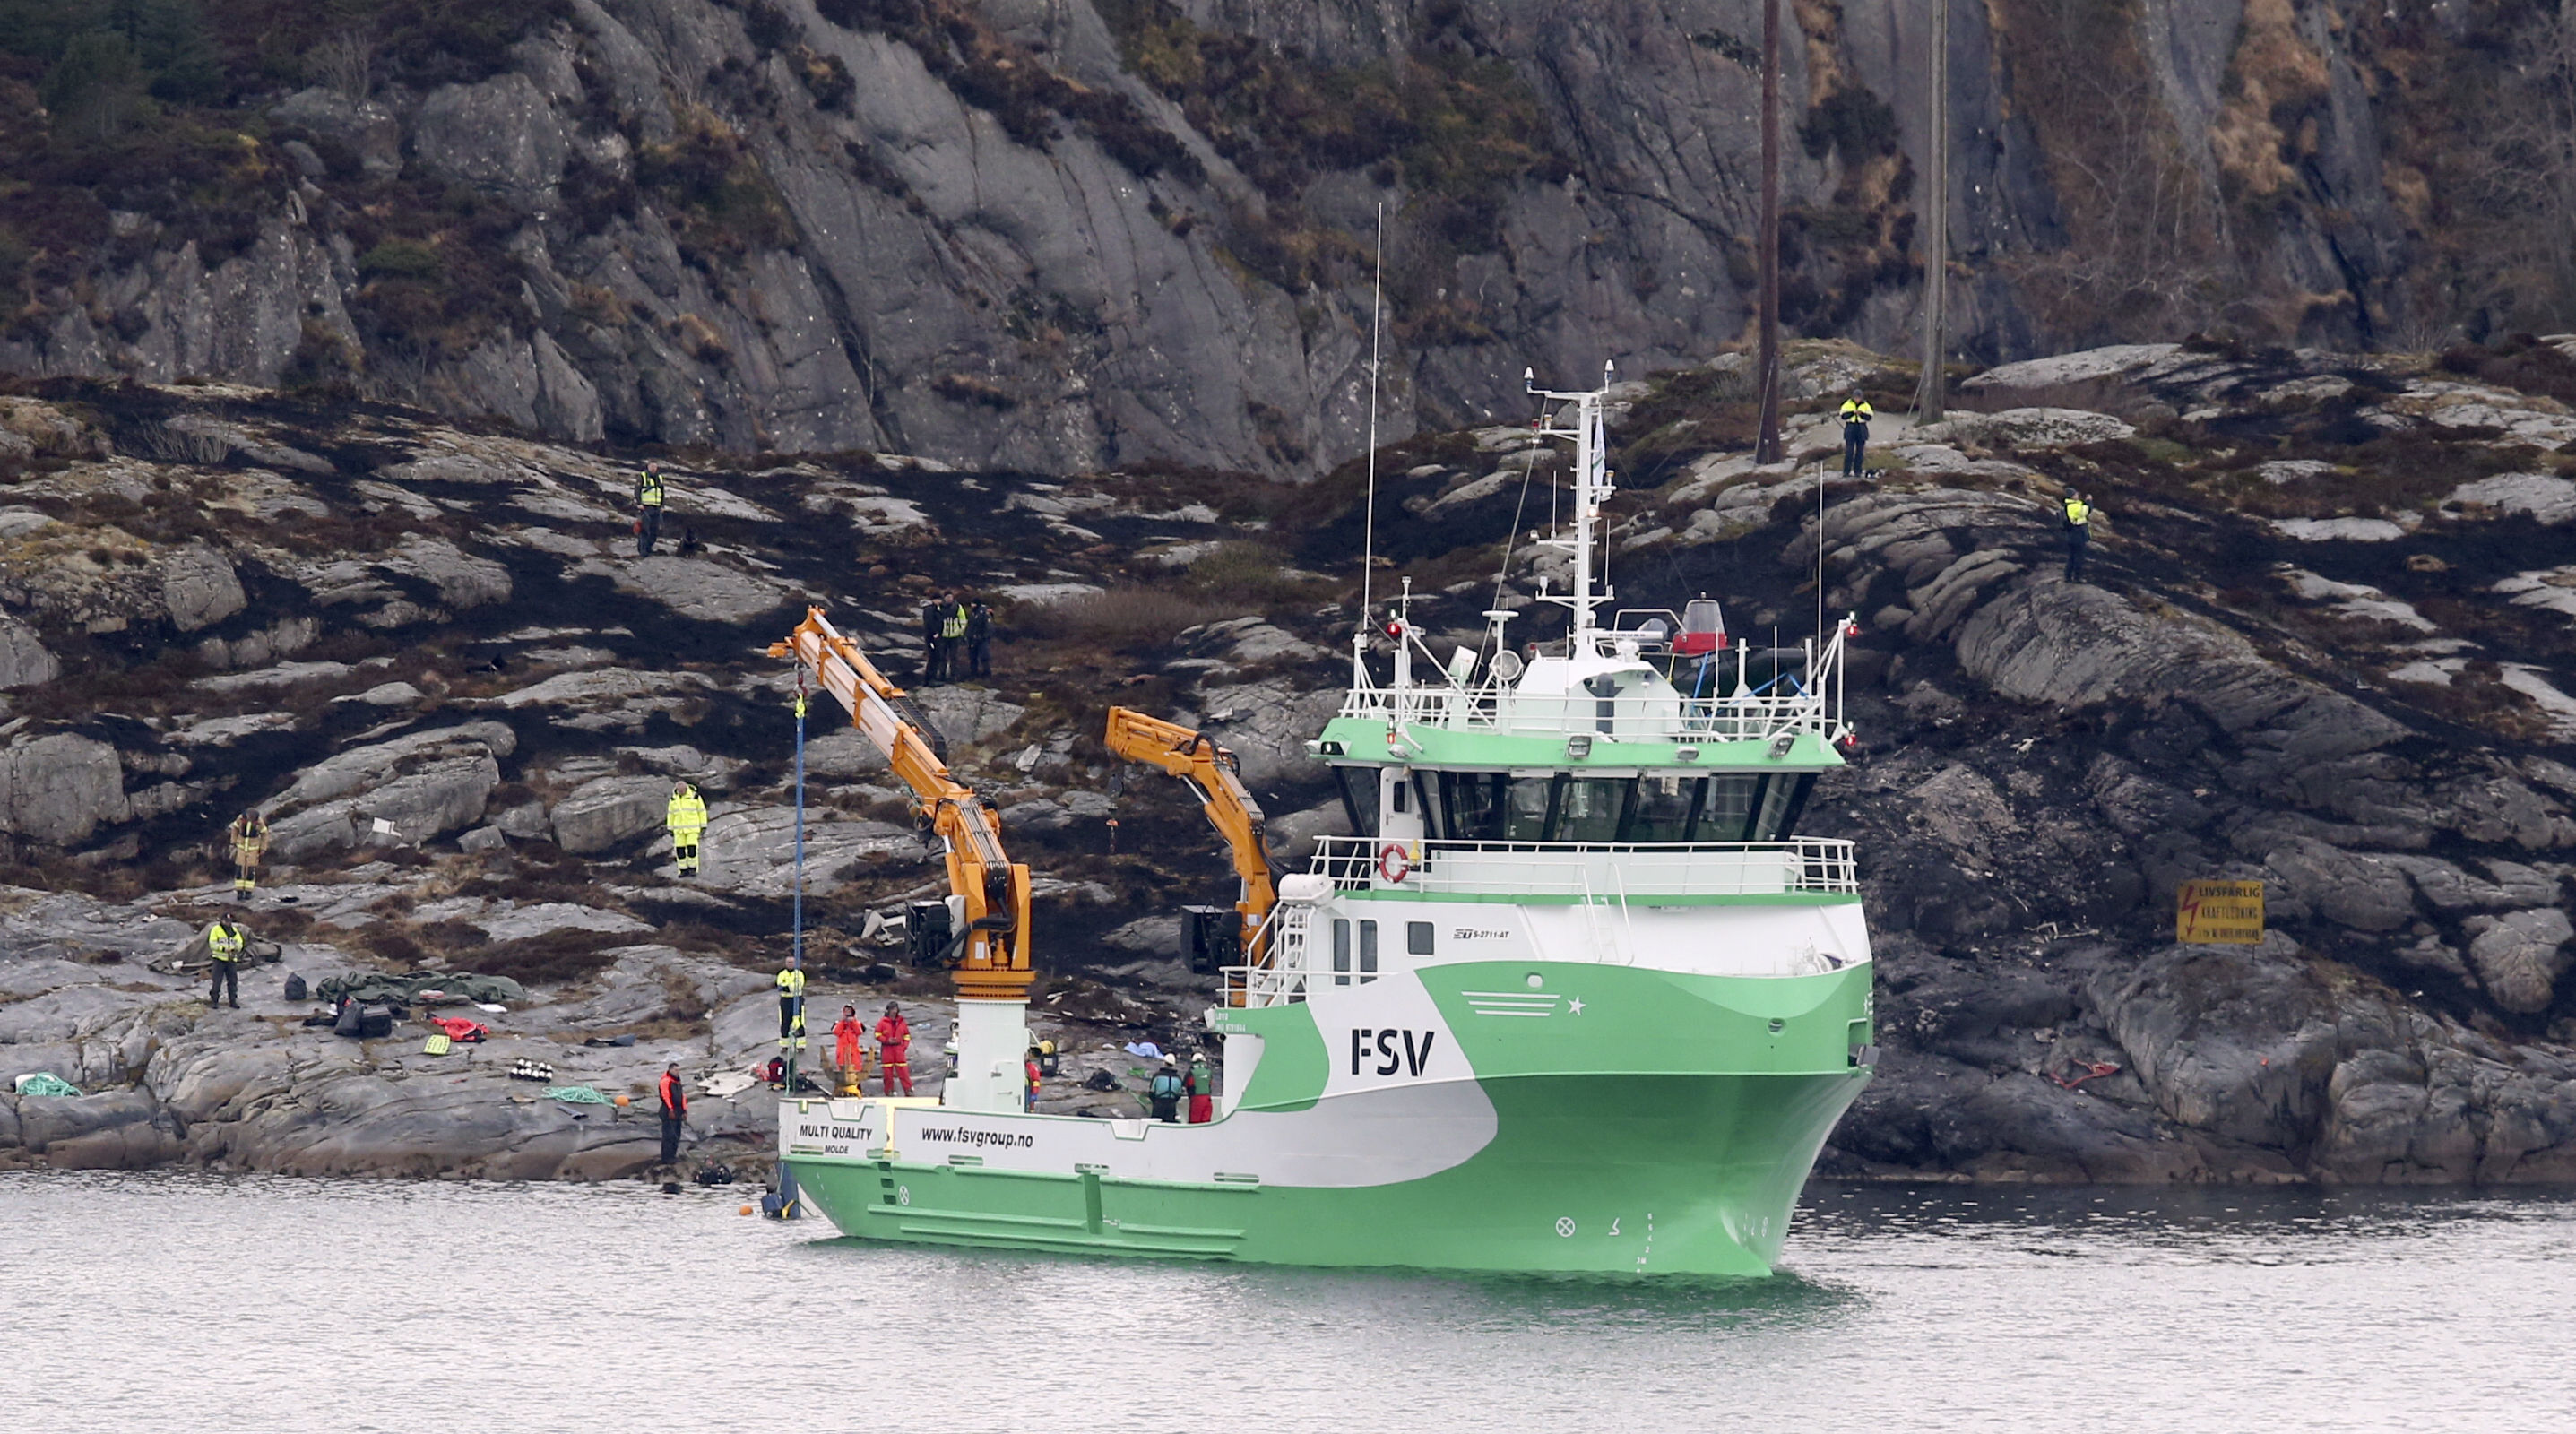 A recovery vessel lifts up parts of the crashed helicopter from off the island of Turoey, near Bergen, Norway.